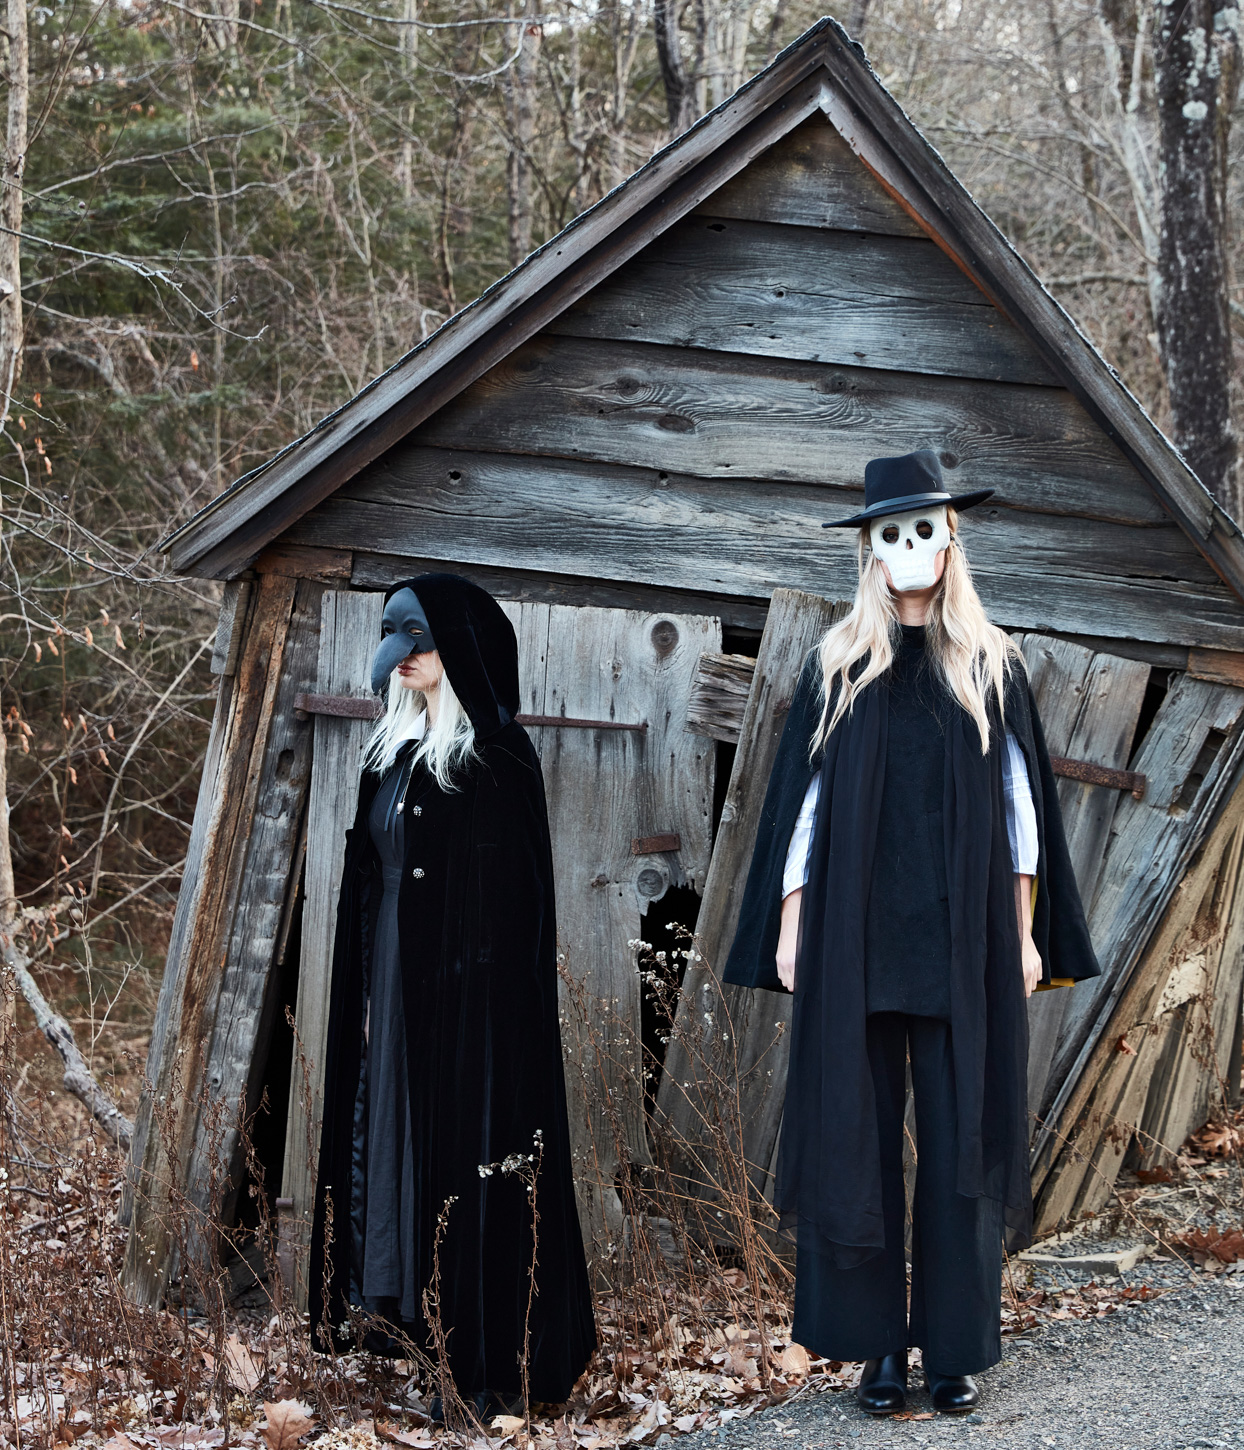 masters of disguise spooky masks and dark cloaks